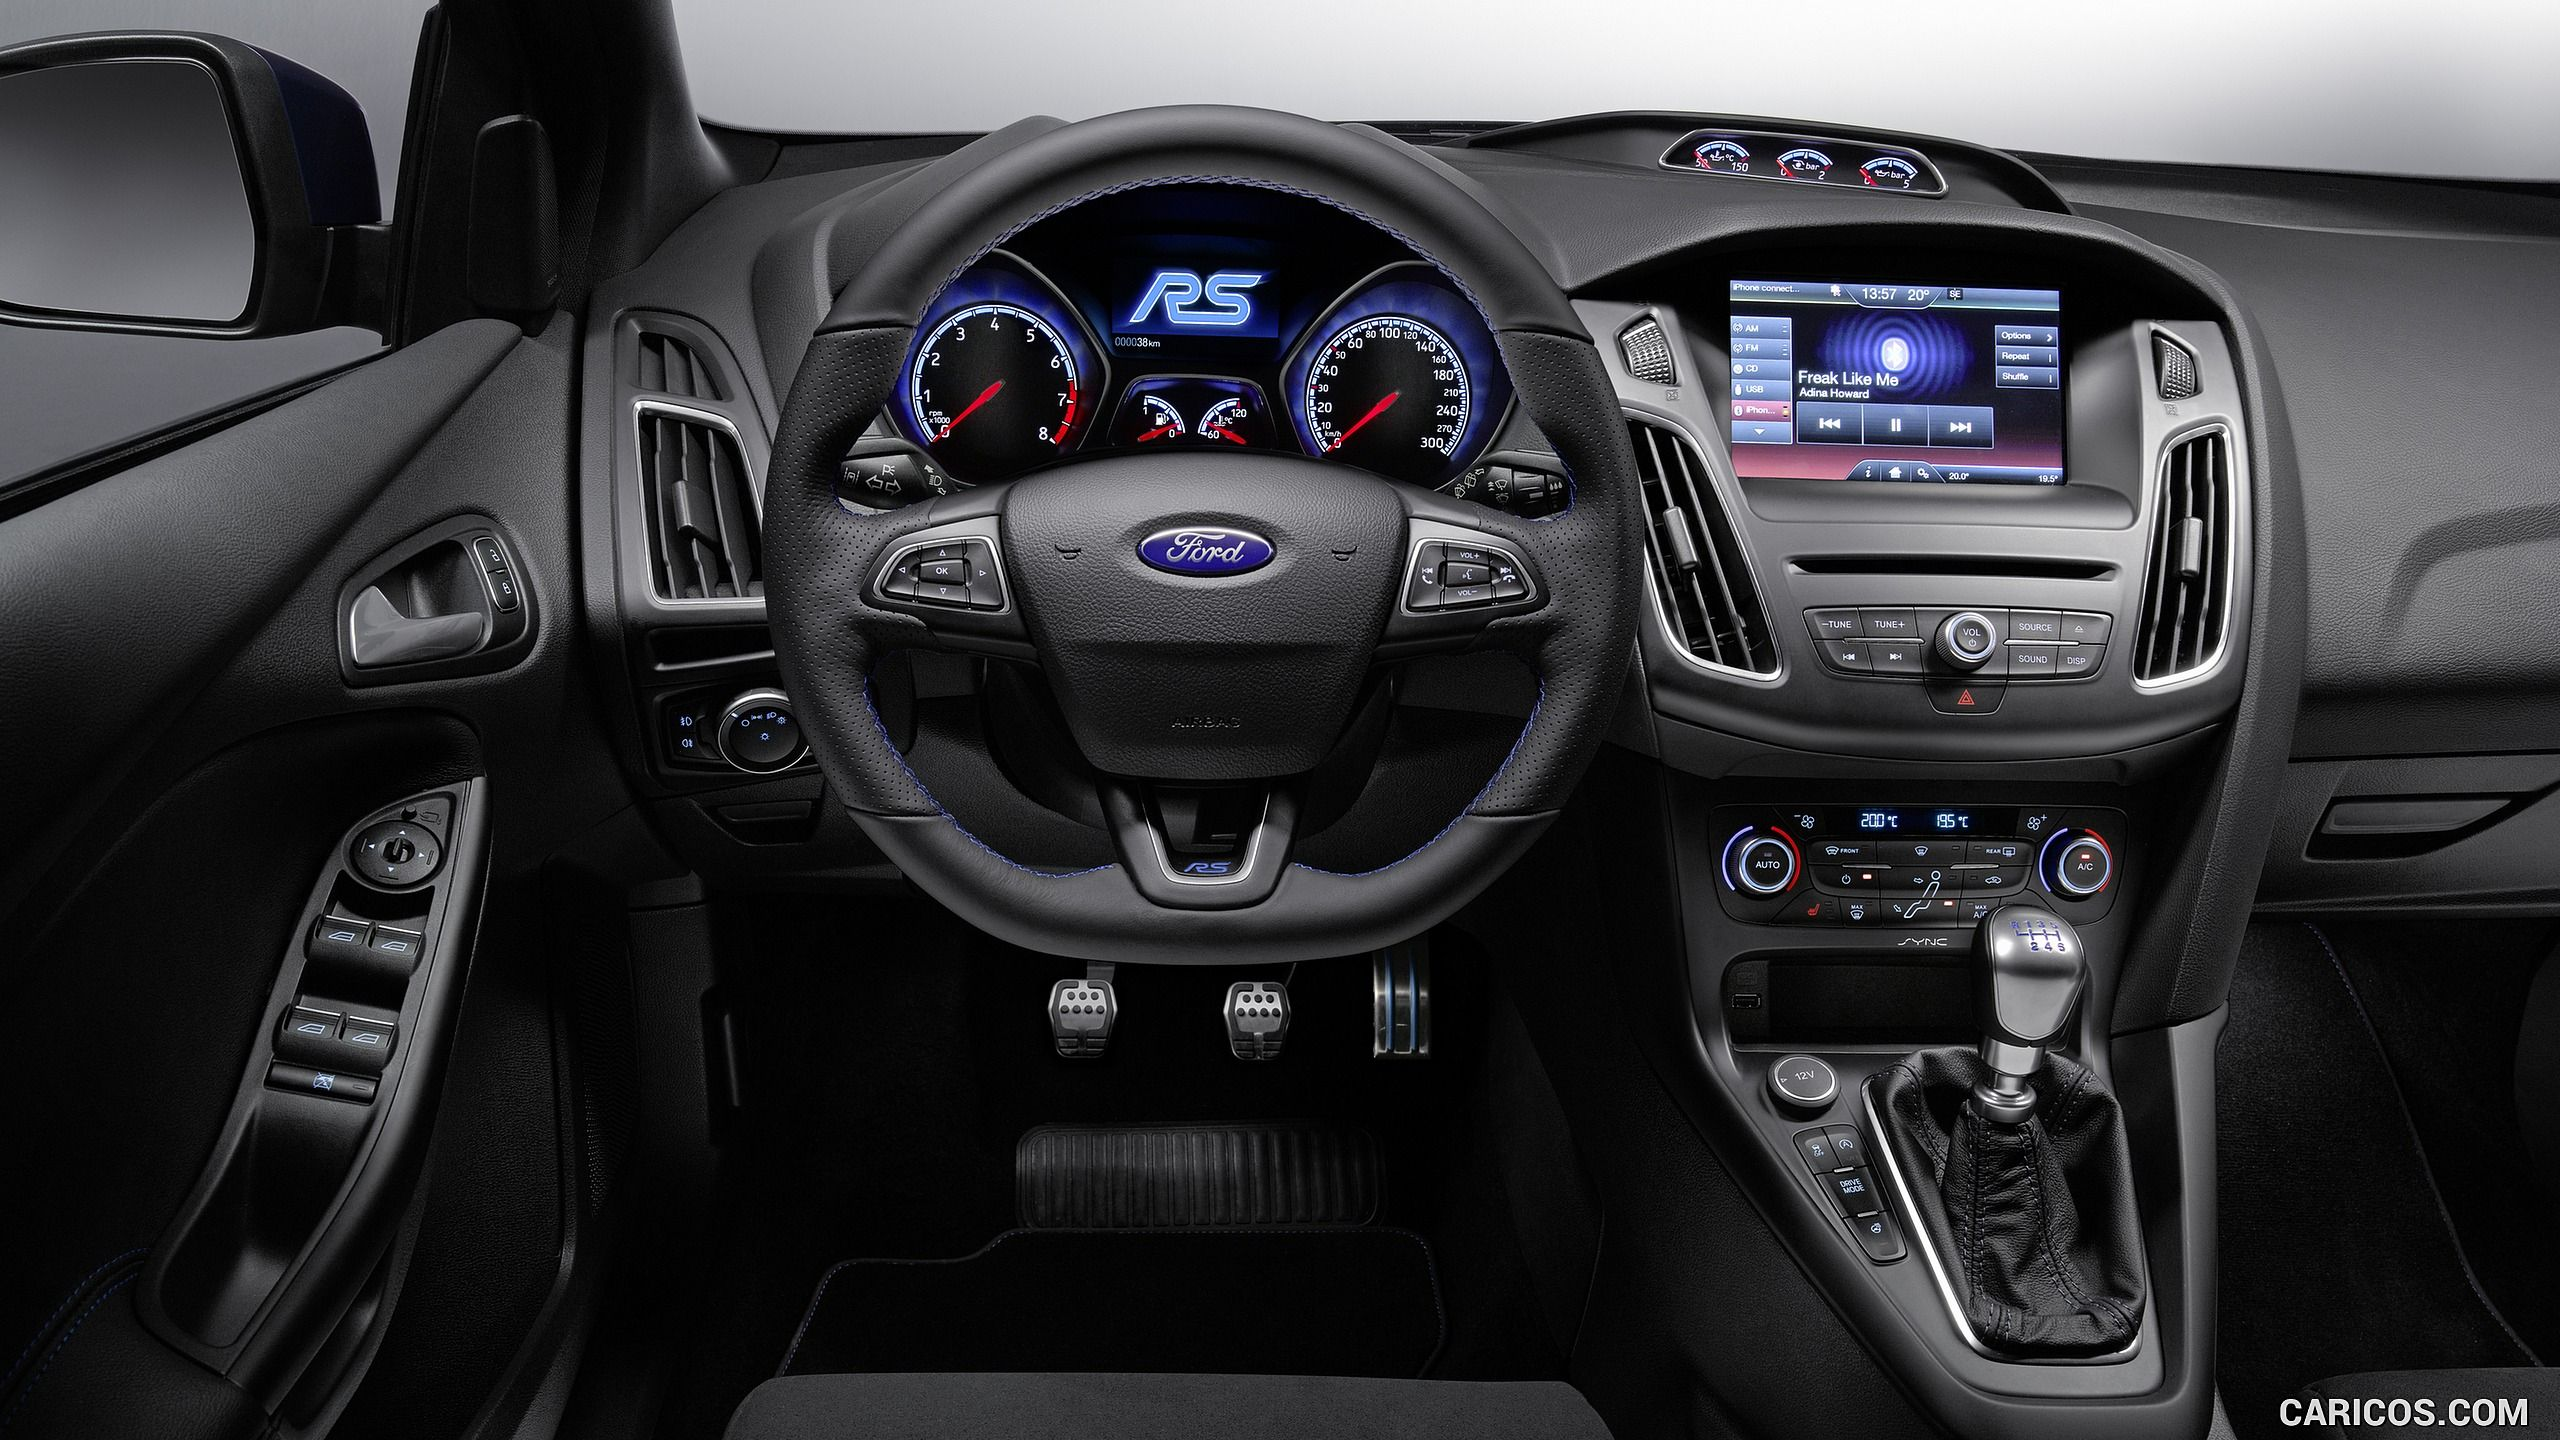 2016 ford focus is the featured model the 2016 ford focus rs interior image is added in car pictures category by the author on jun